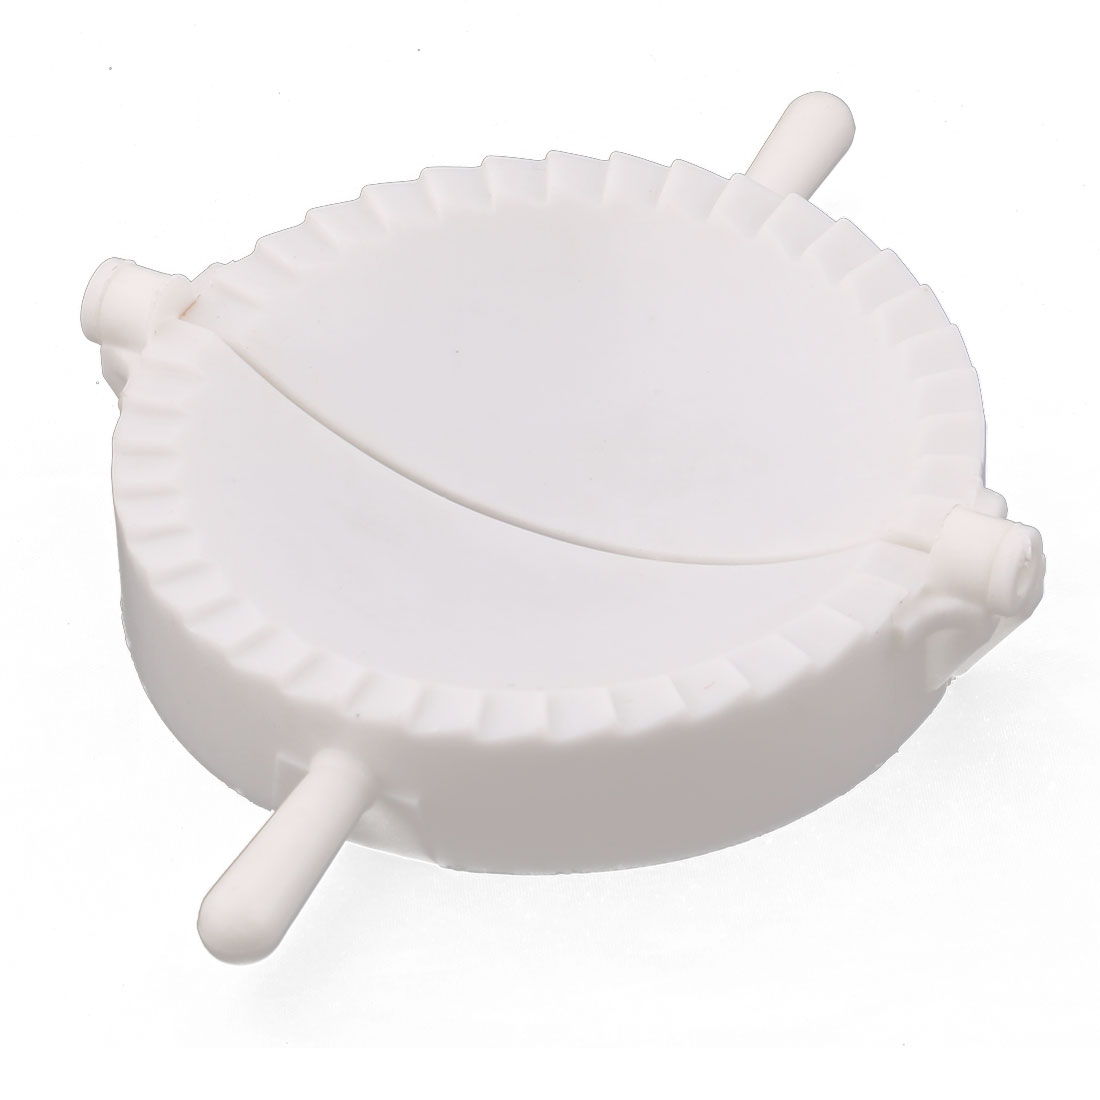 Home Kitchenware Plastic Chinese Dumpling Making Tool Wonton Pastry Mold White